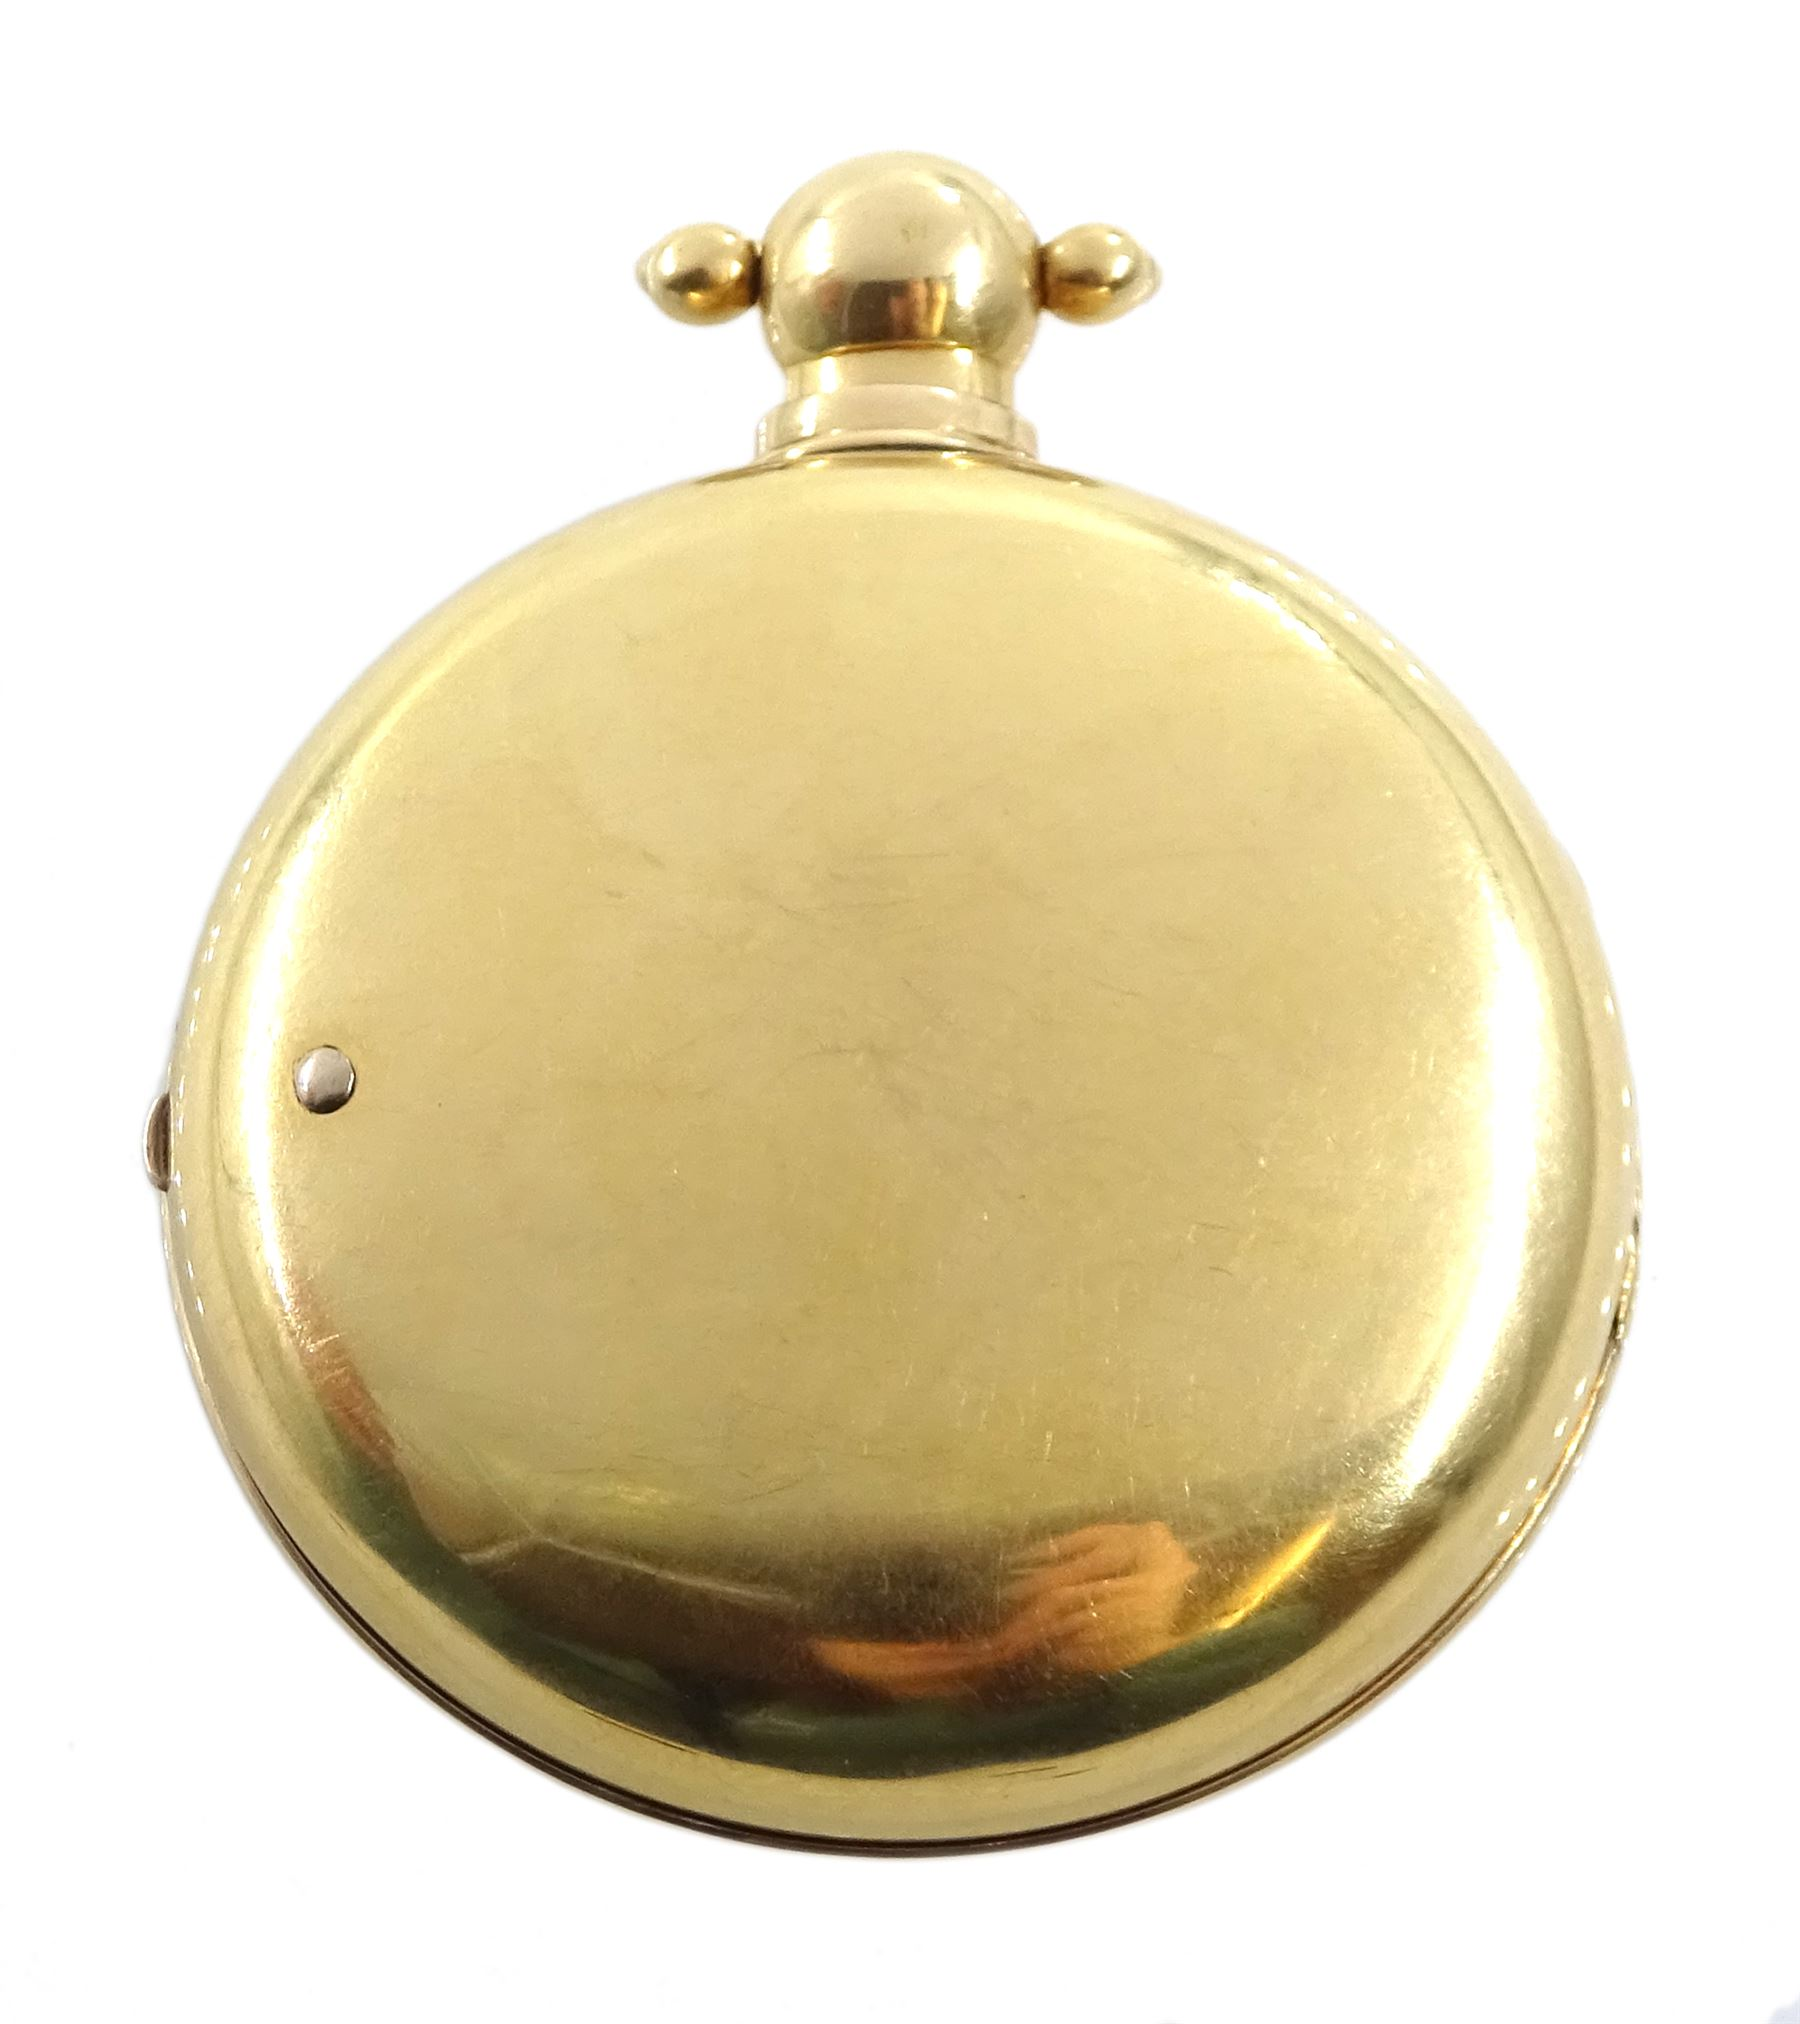 George III 18ct gold pair cased English lever fusee pocket watch by John Bolton - Image 8 of 9